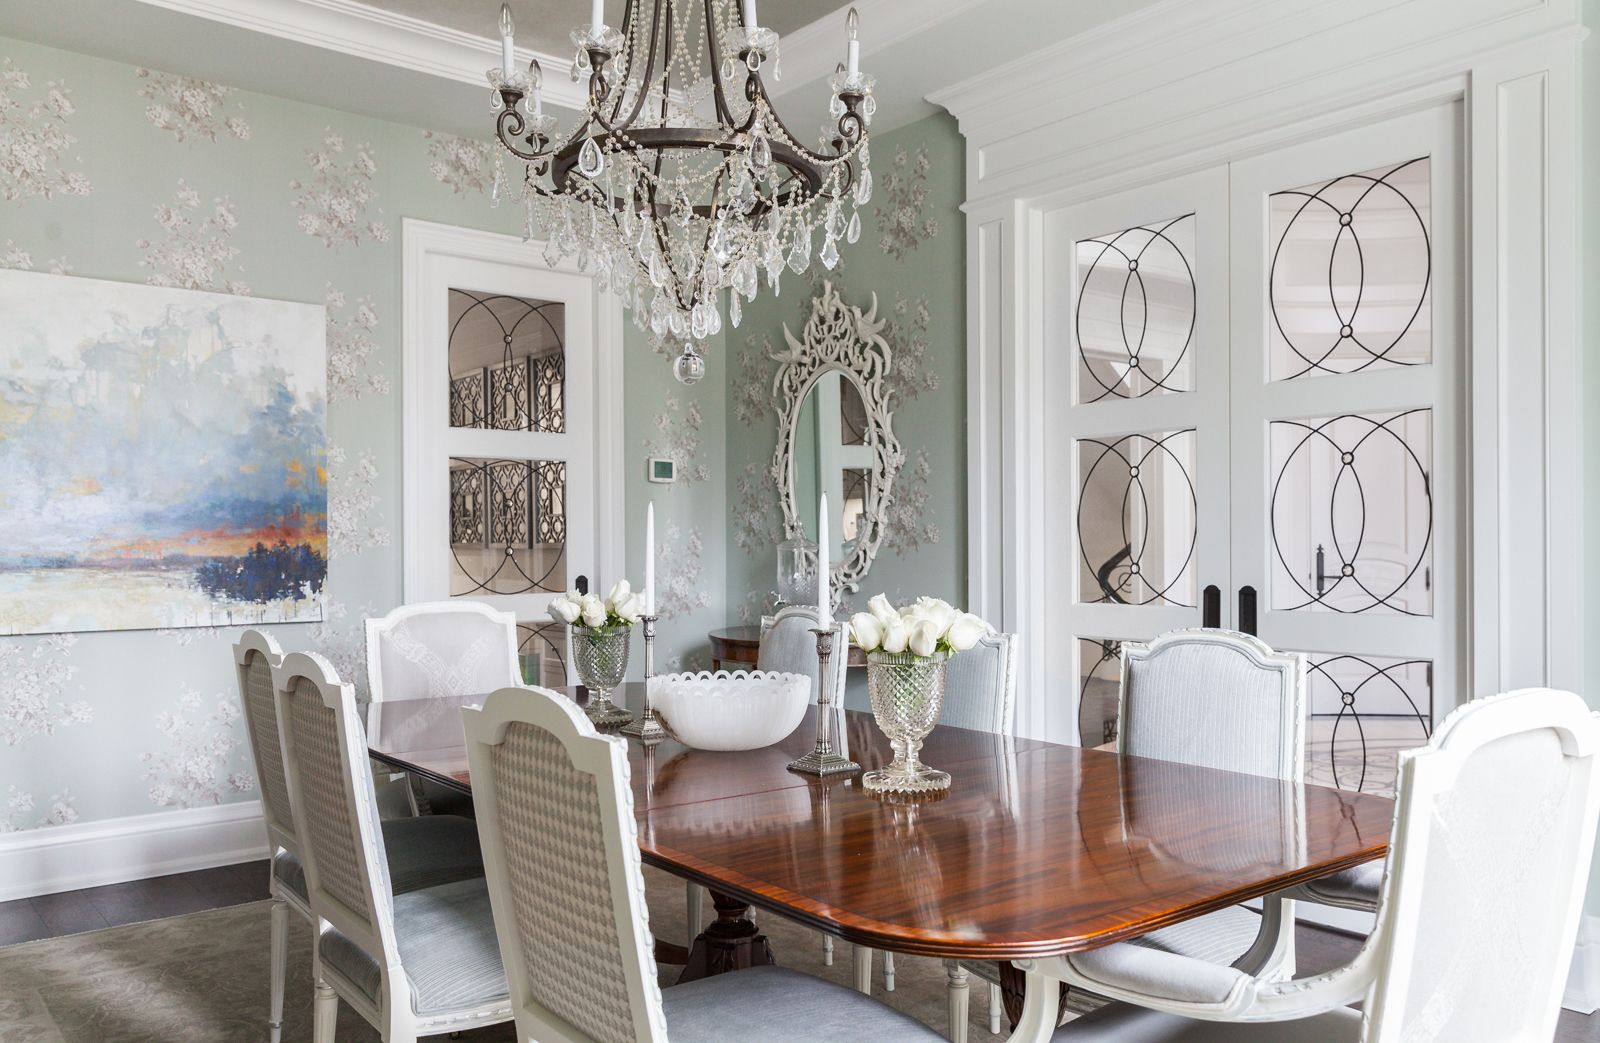 Opulent Dining | Full Dining Room With Table